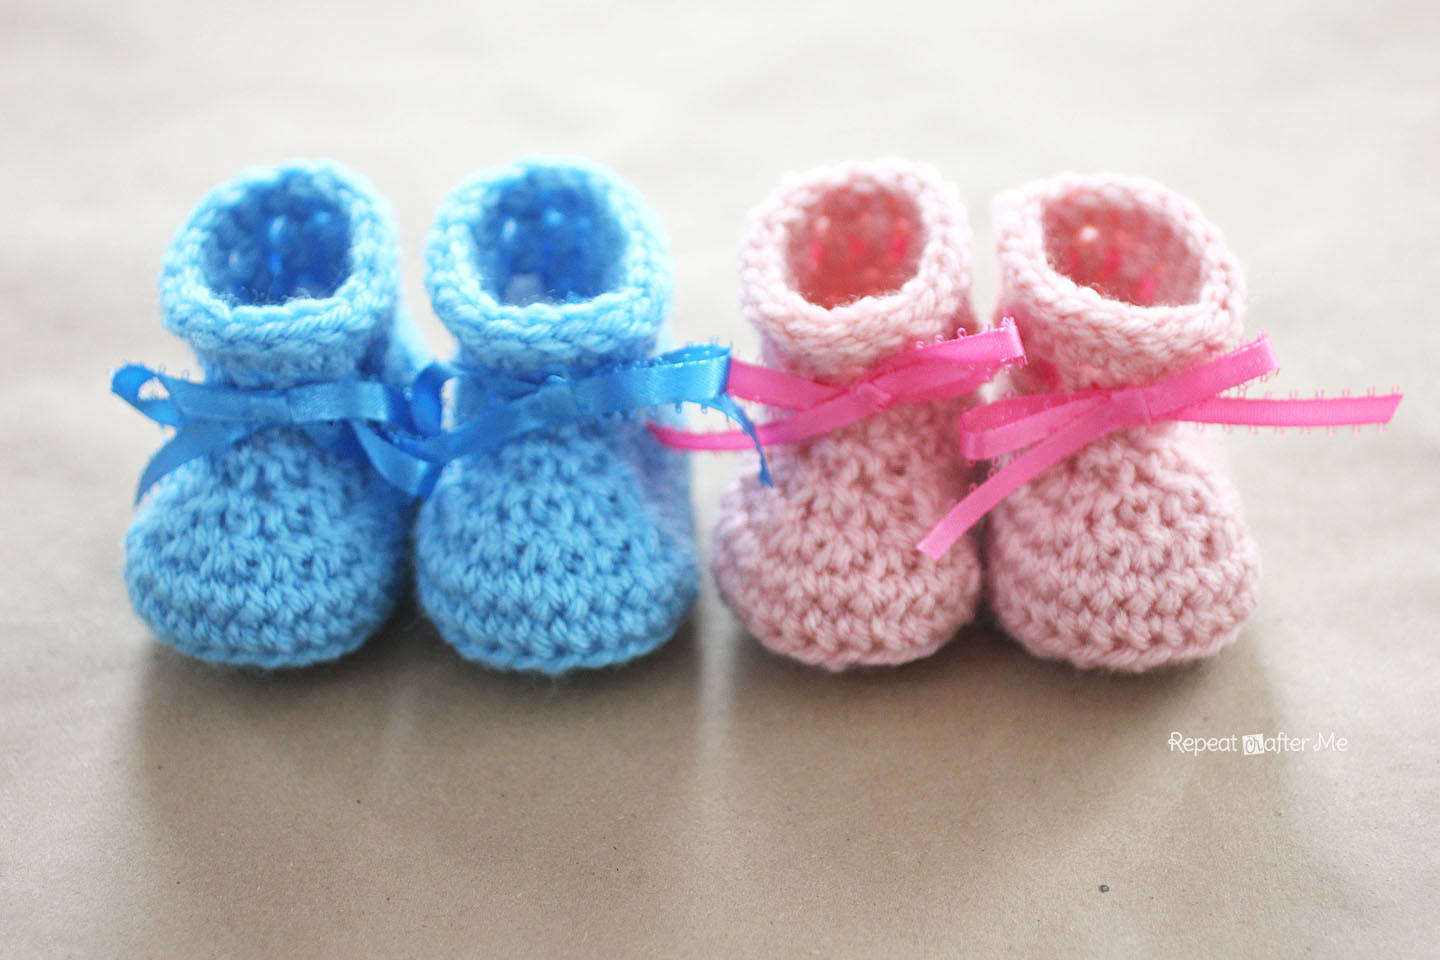 Luxury Crochet Newborn Baby Booties Pattern Repeat Crafter Me Crochet Baby socks Of Beautiful Crochet Baby Booties Patterns for Sweet Little Feet Crochet Baby socks